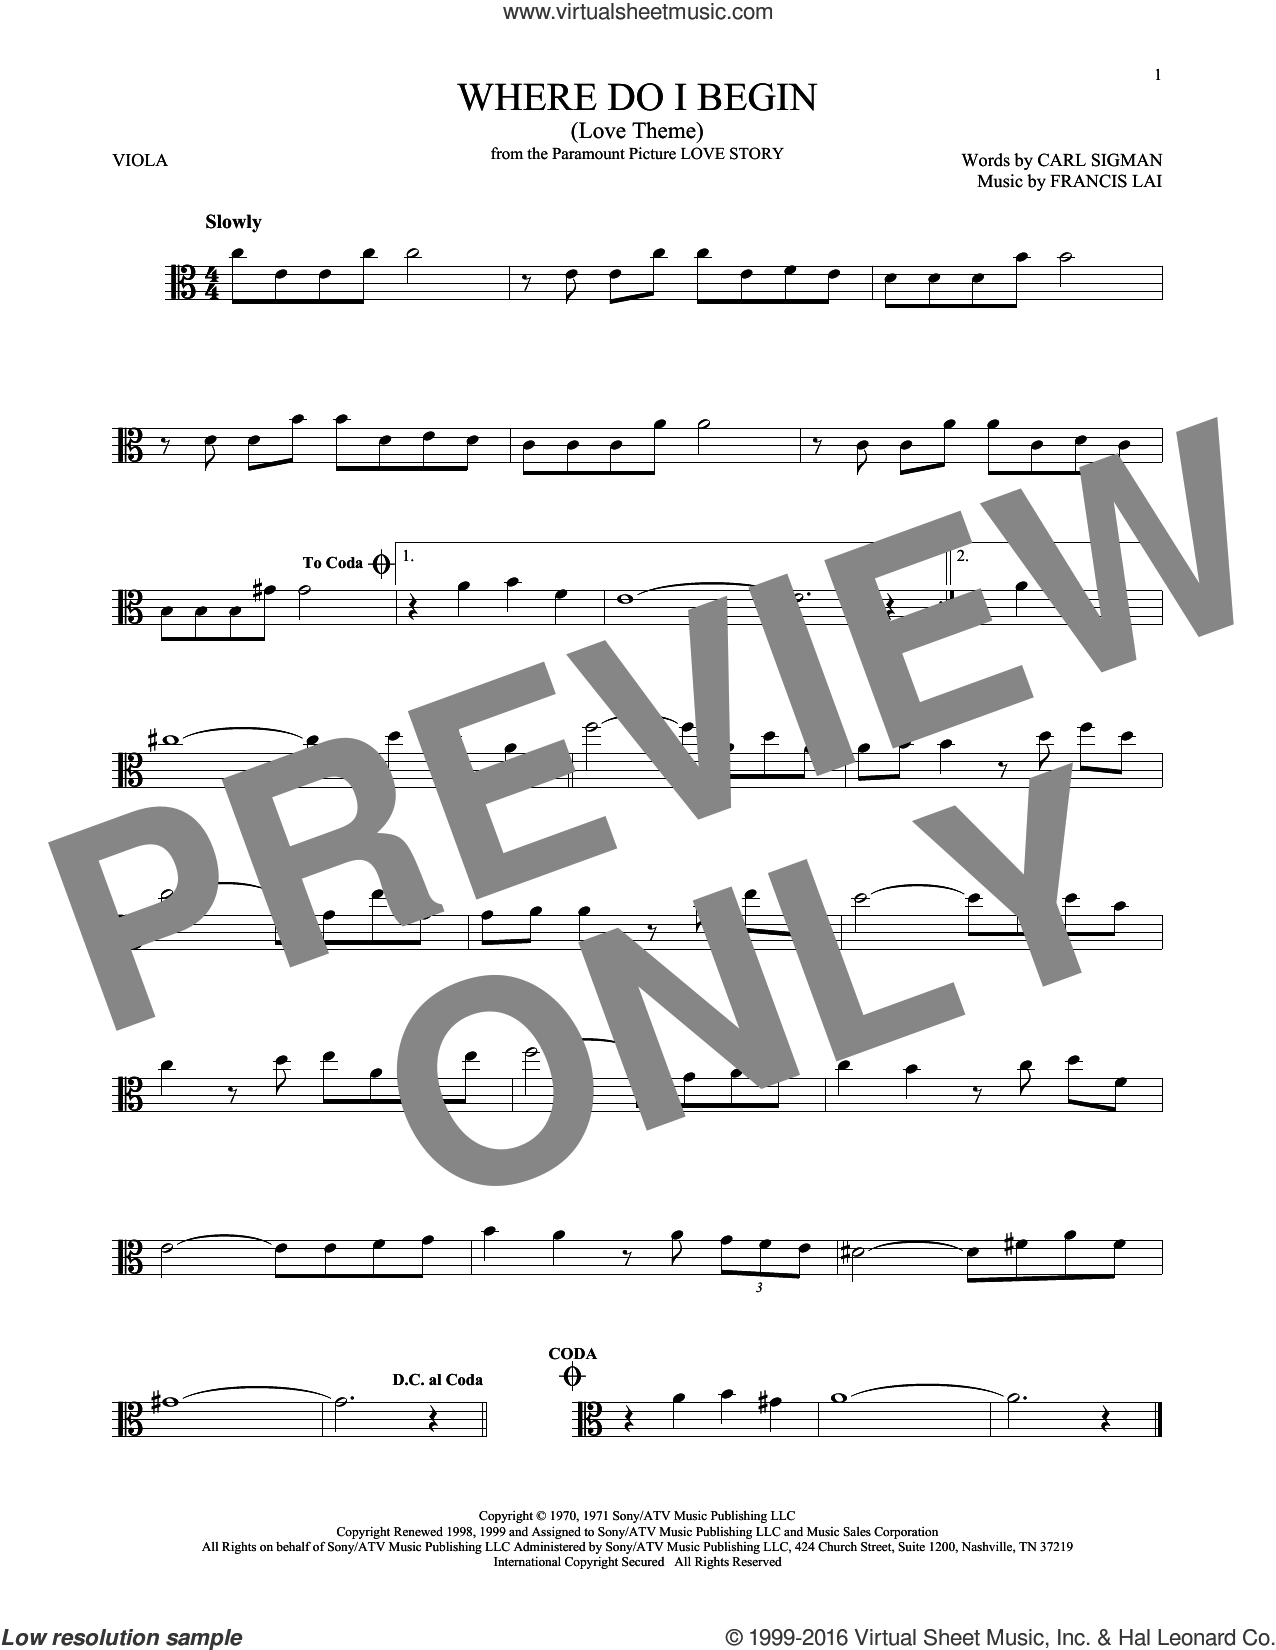 Where Do I Begin (Love Theme) sheet music for viola solo by Andy Williams, Carl Sigman and Francis Lai, intermediate skill level